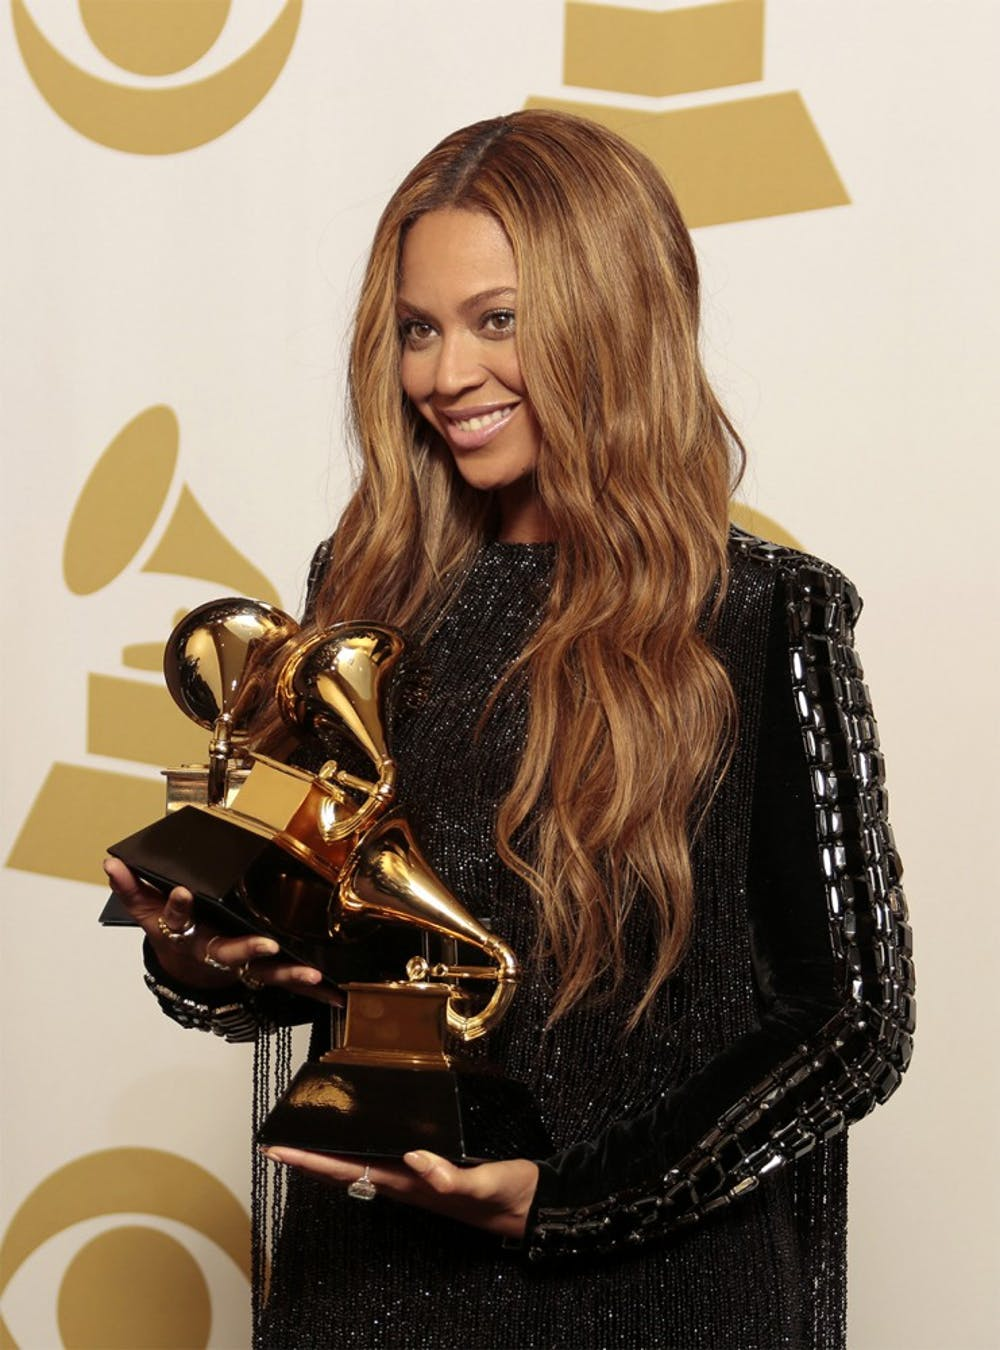 Beyonce backstage at the 57th Annual Grammy Awards at Staples Center in Los Angeles on Sunday, Feb. 8, 2015.